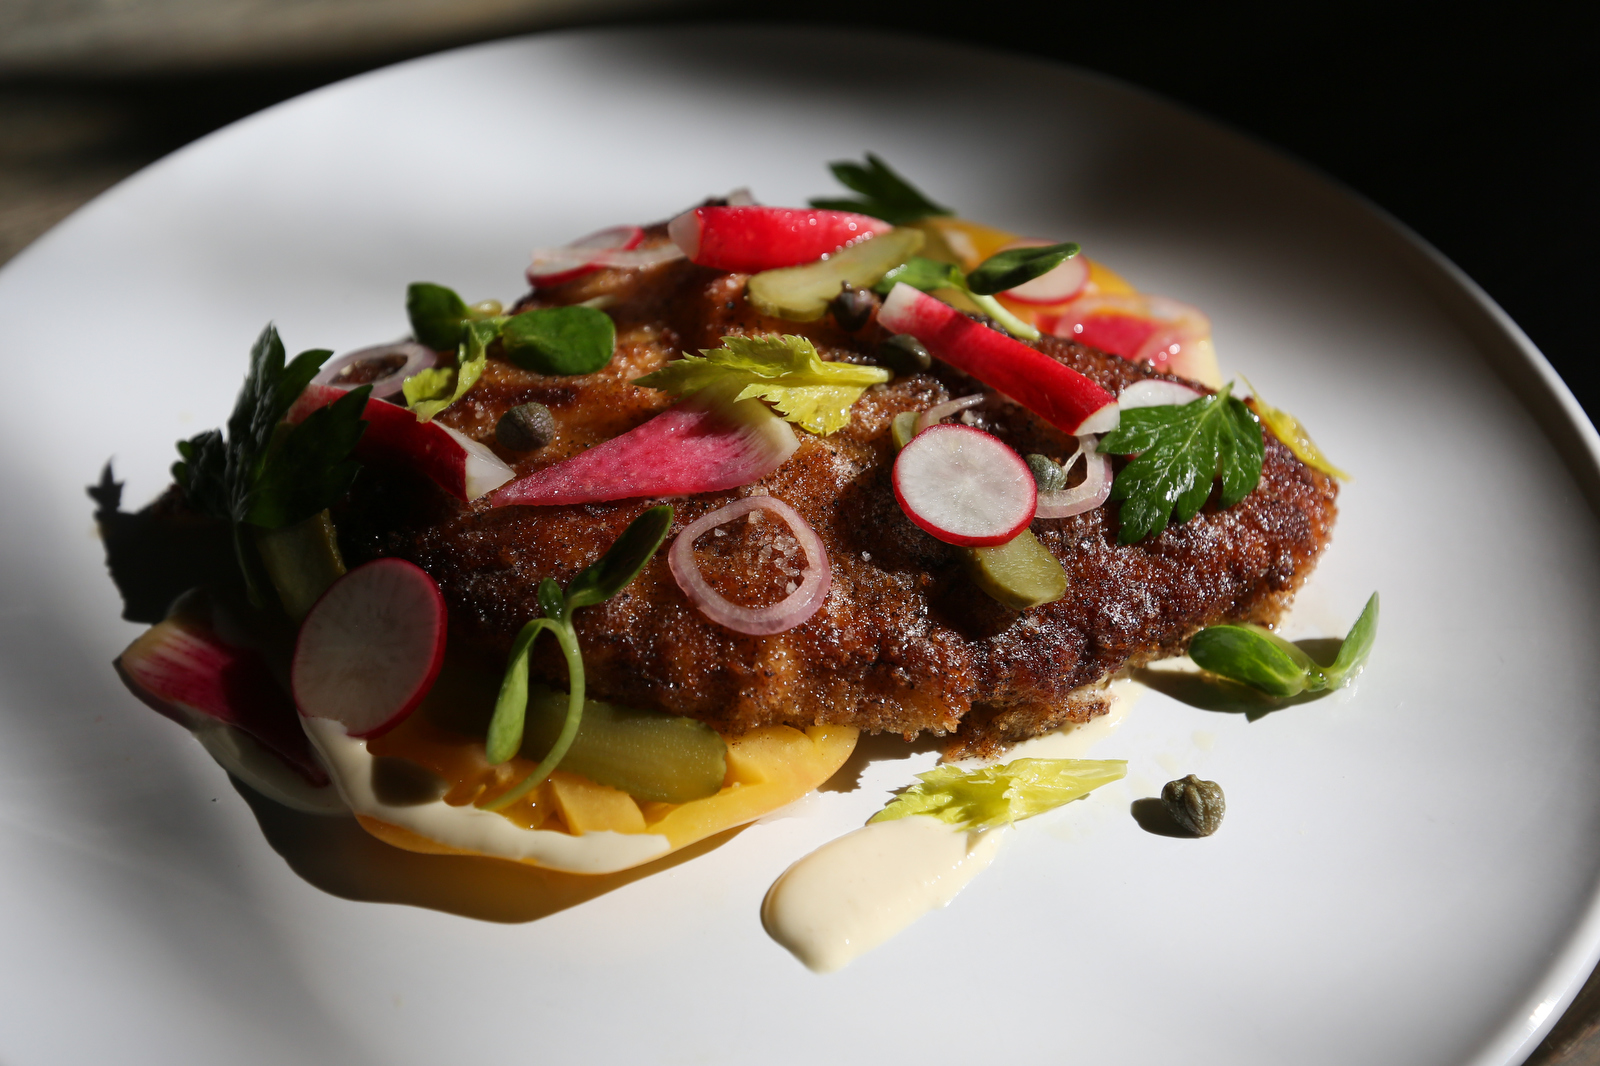 Cobia schnitzel with lemon emulsion topped with a tomato and radish salad at the Ordinary in Charleston, S.C.